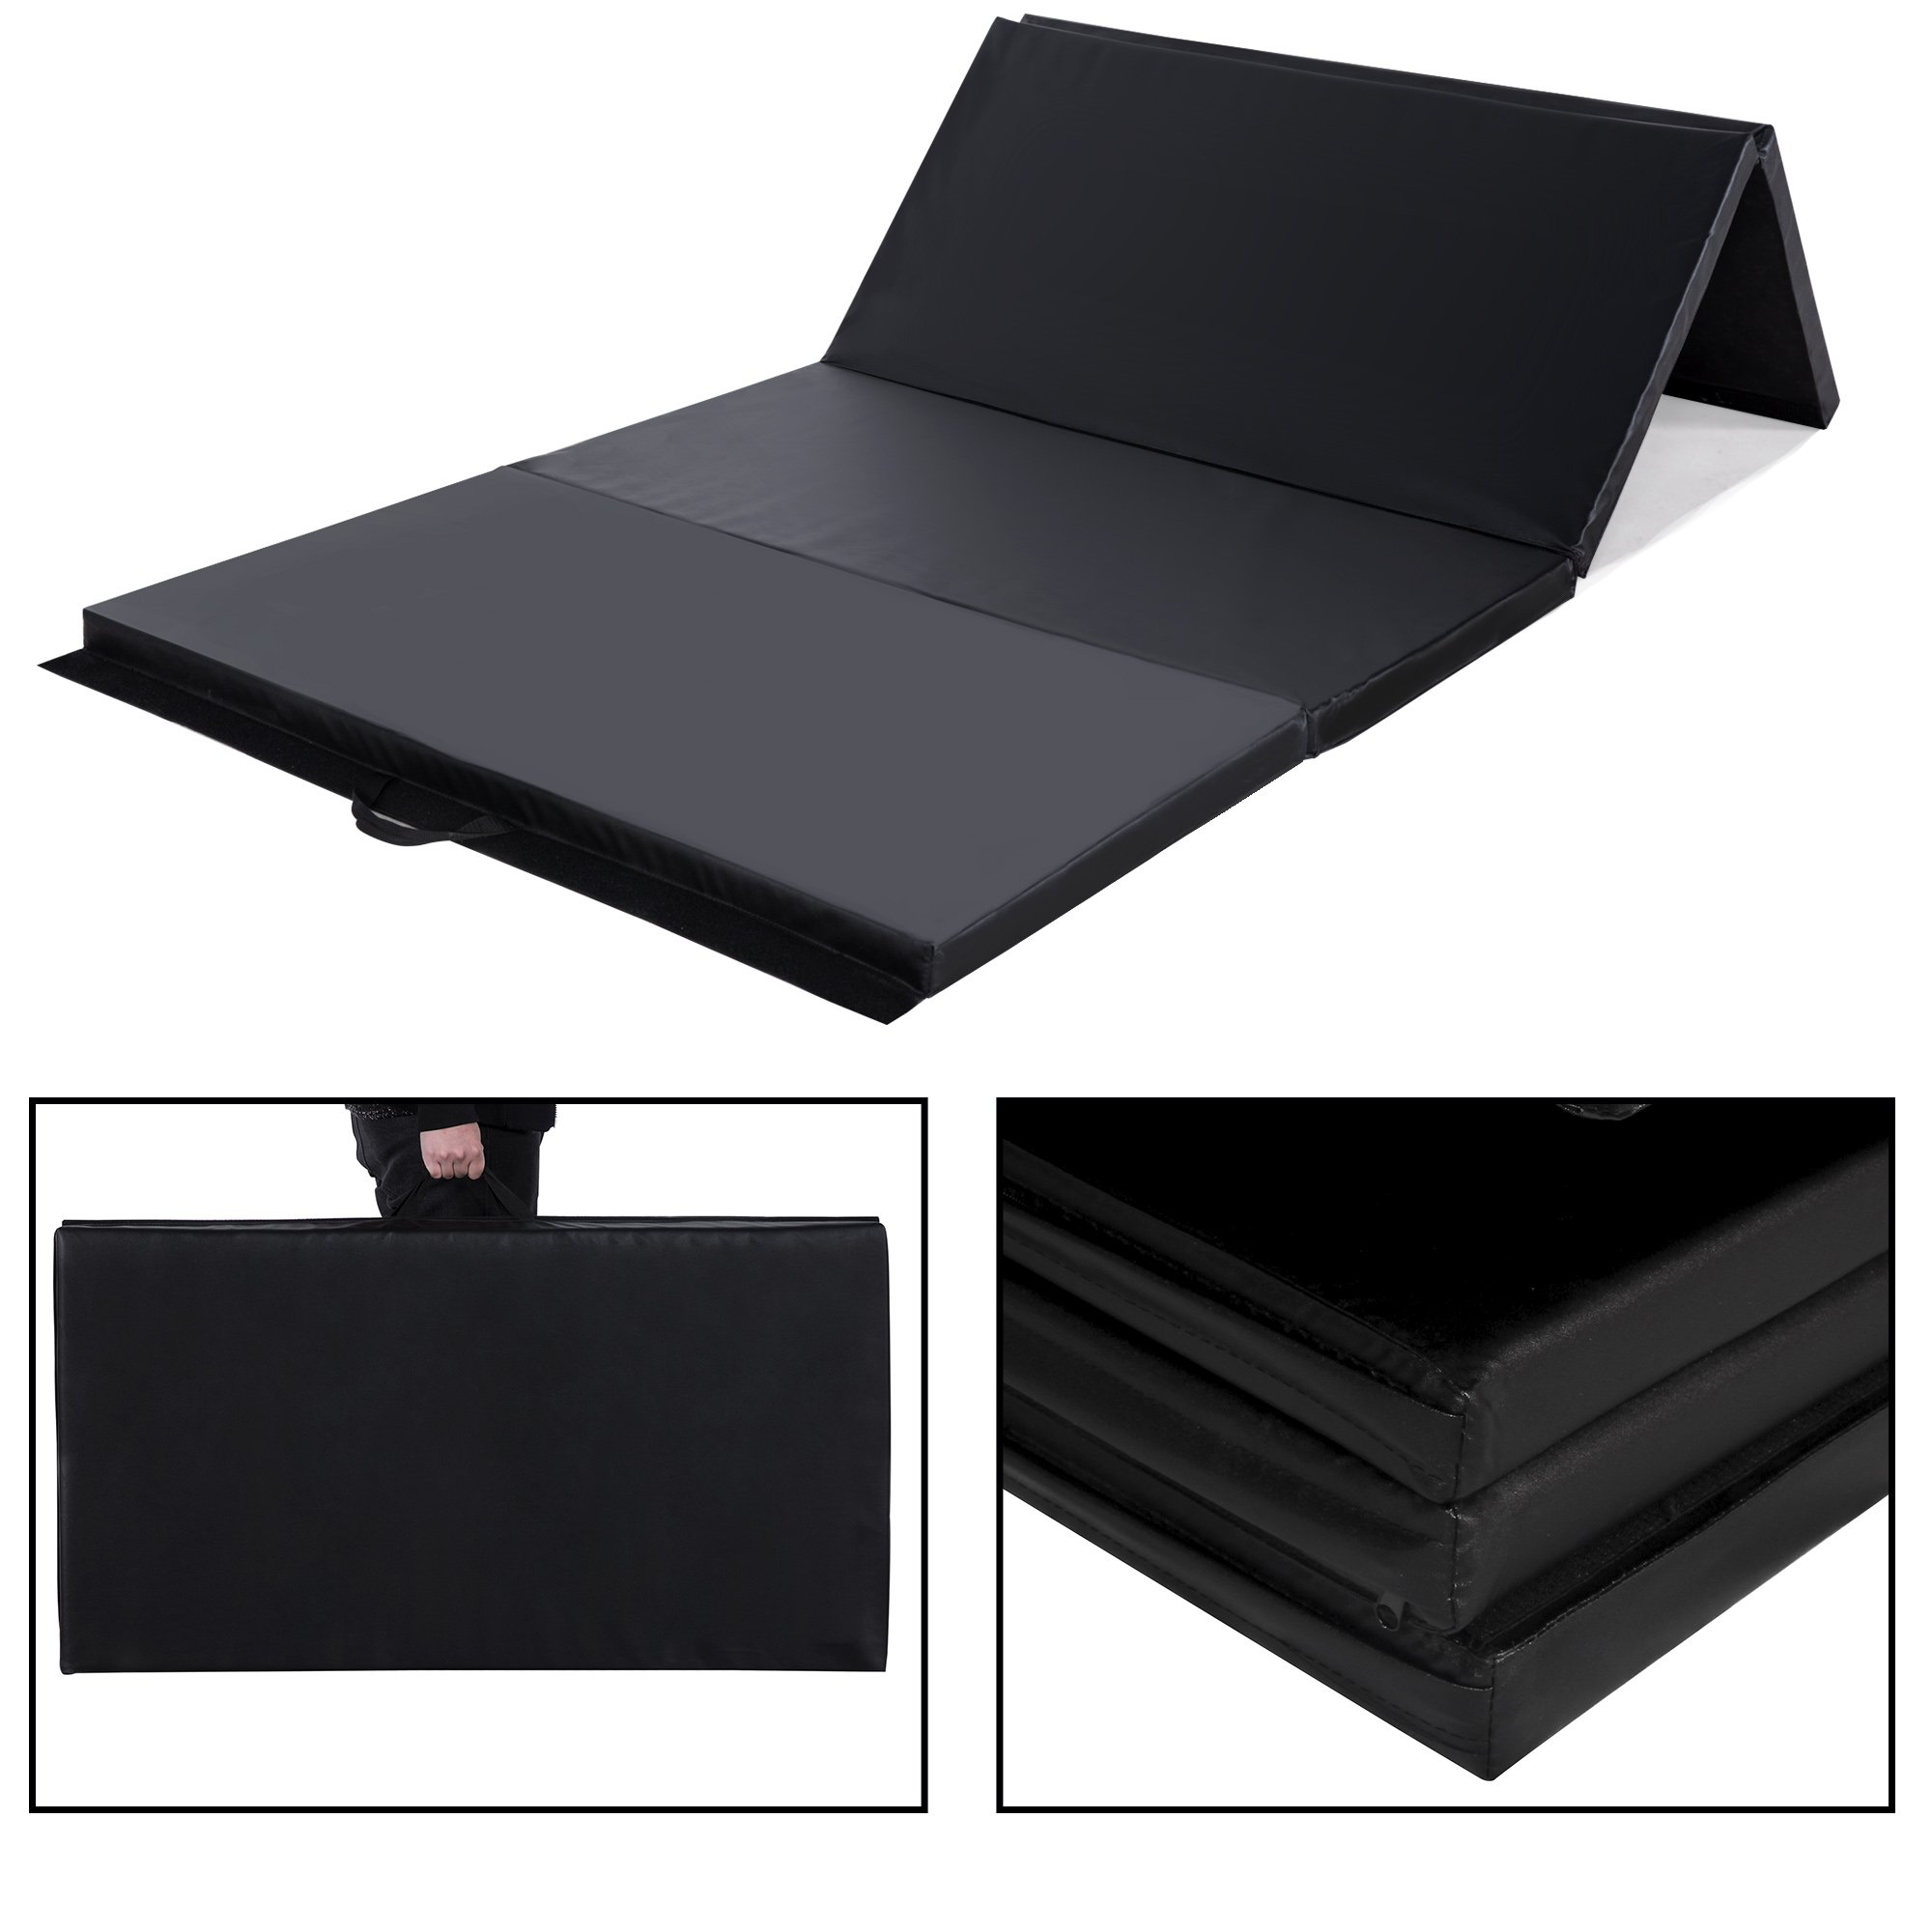 Sportmad 4'x8'x2/4'x10'x2 Thick Folding Panel Gymnastics Tumbling Mat for Home Gym Fitness Exercise by Sportmad (Image #1)